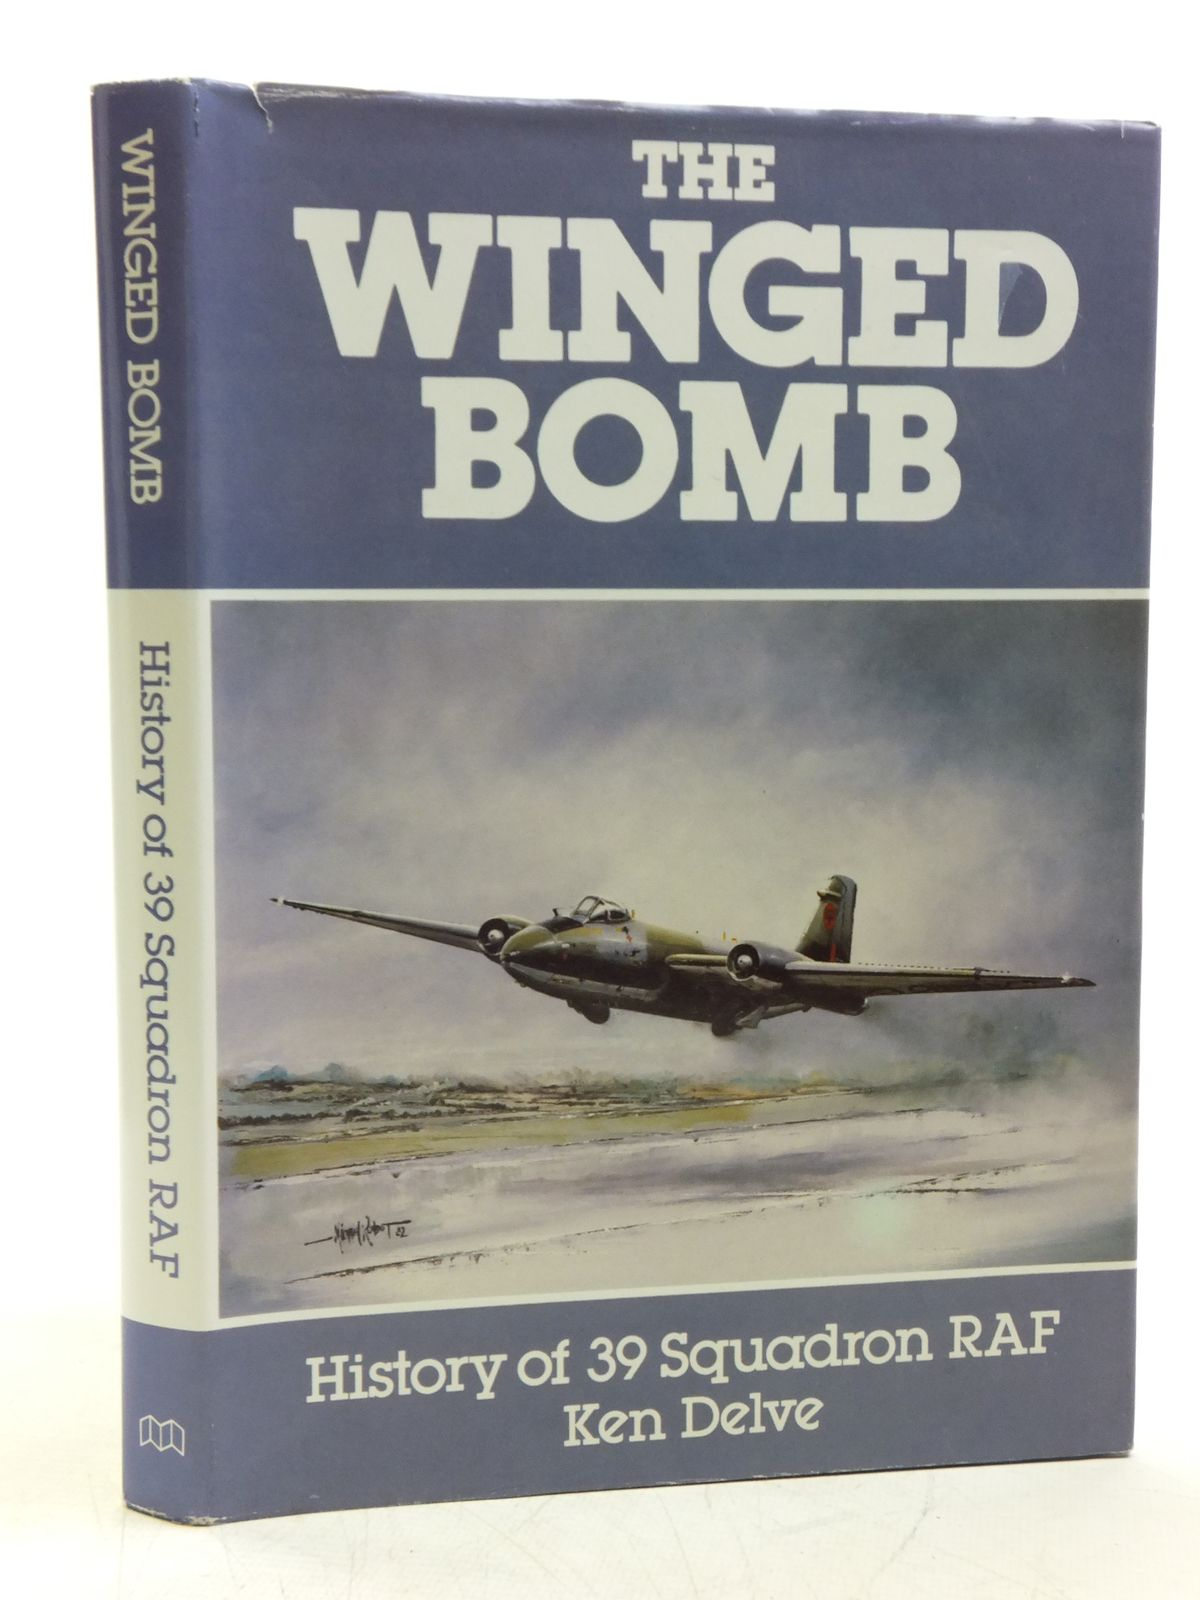 Photo of THE WINGED BOMB HISTORY OF 39 SQUADRON RAF written by Delve, Ken published by Midland Counties Publications (STOCK CODE: 1607876)  for sale by Stella & Rose's Books